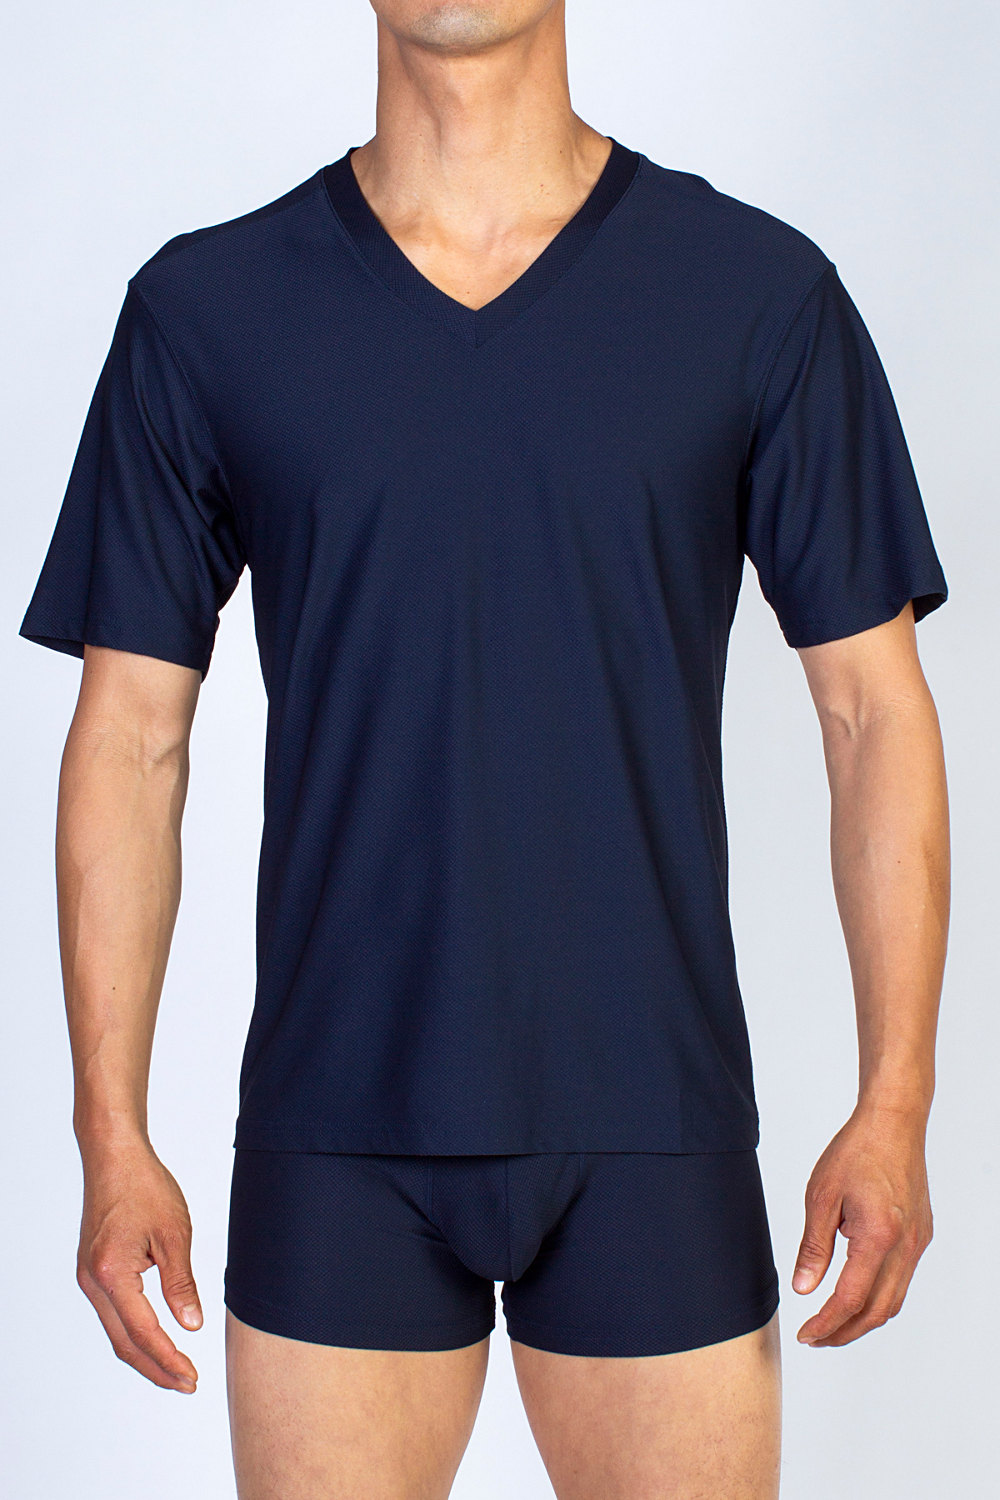 Navy V-neck by Ex-Officio